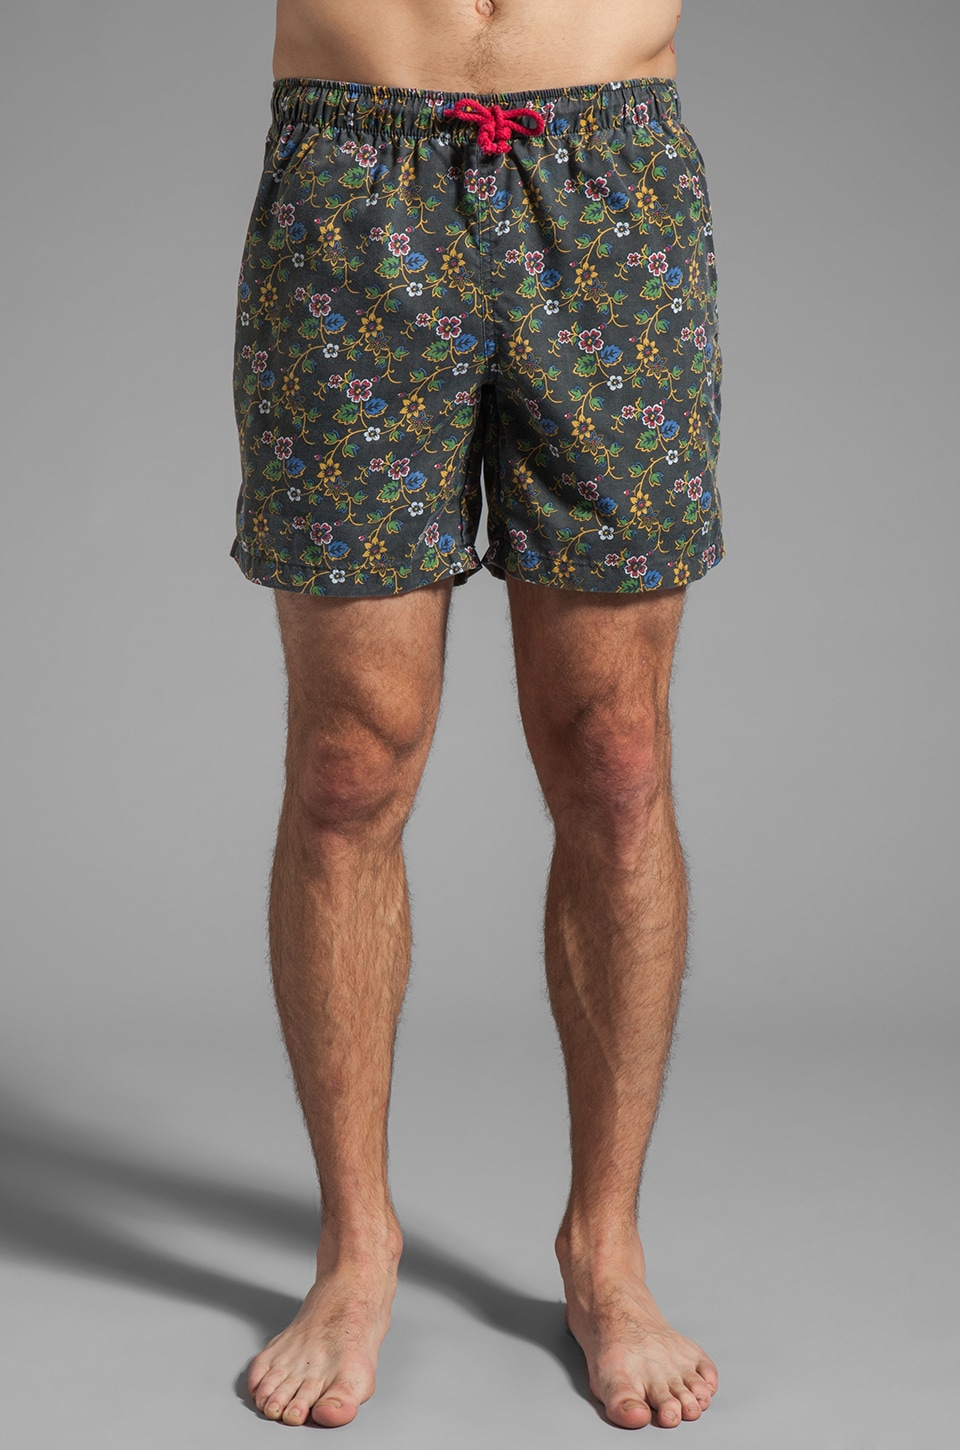 Vanishing Elephant Drawcord Boardshort in Black Floral